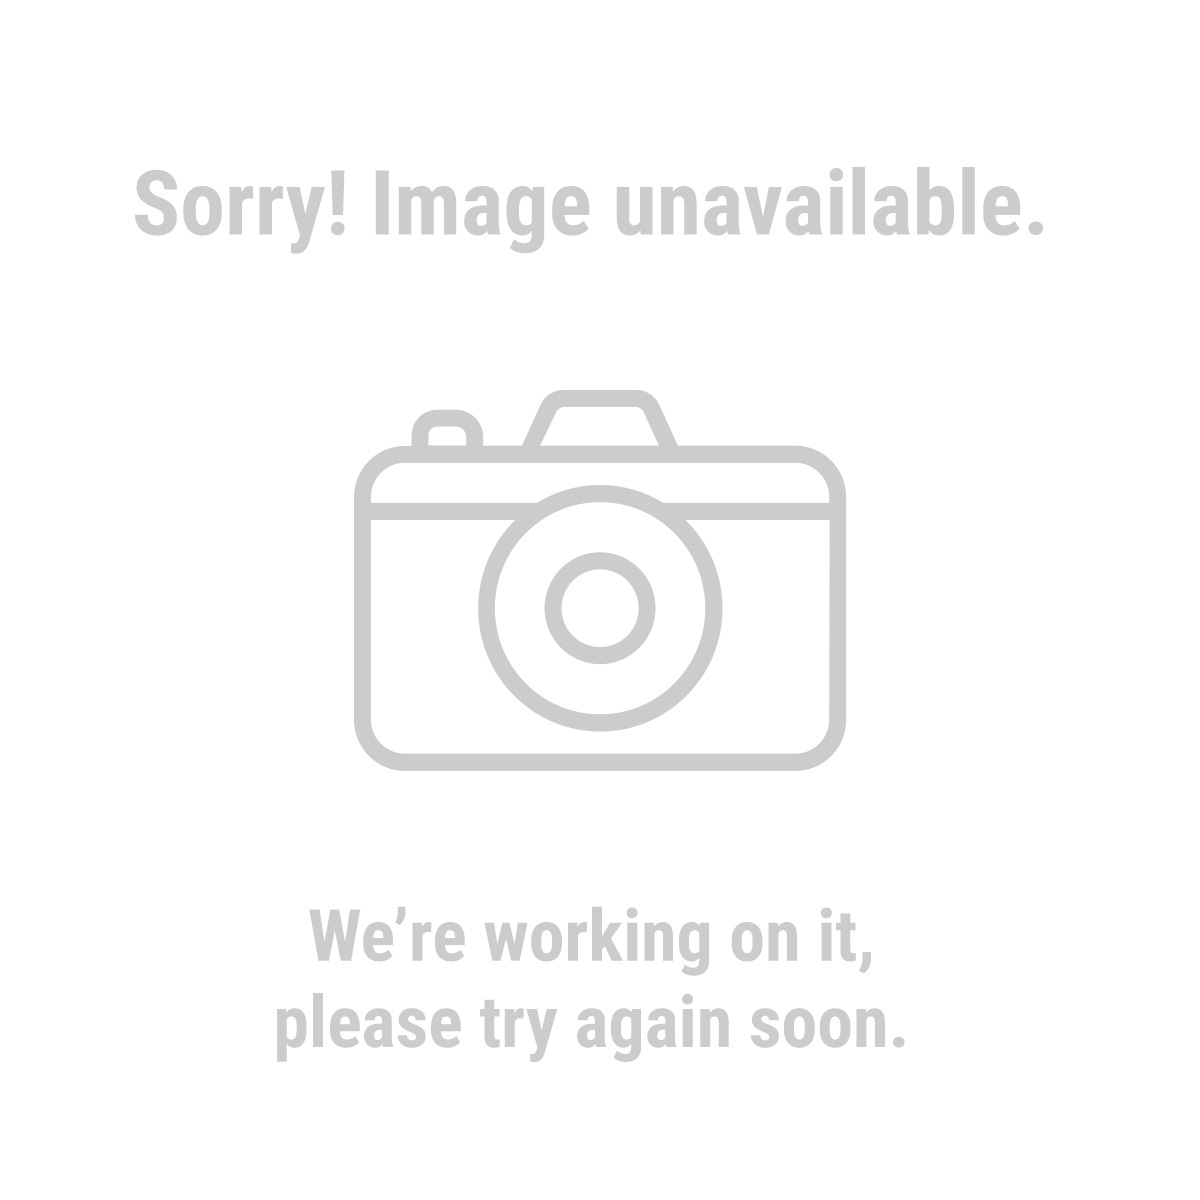 HFT 45284 50 Ft. 14 Gauge Outdoor Extension Cord